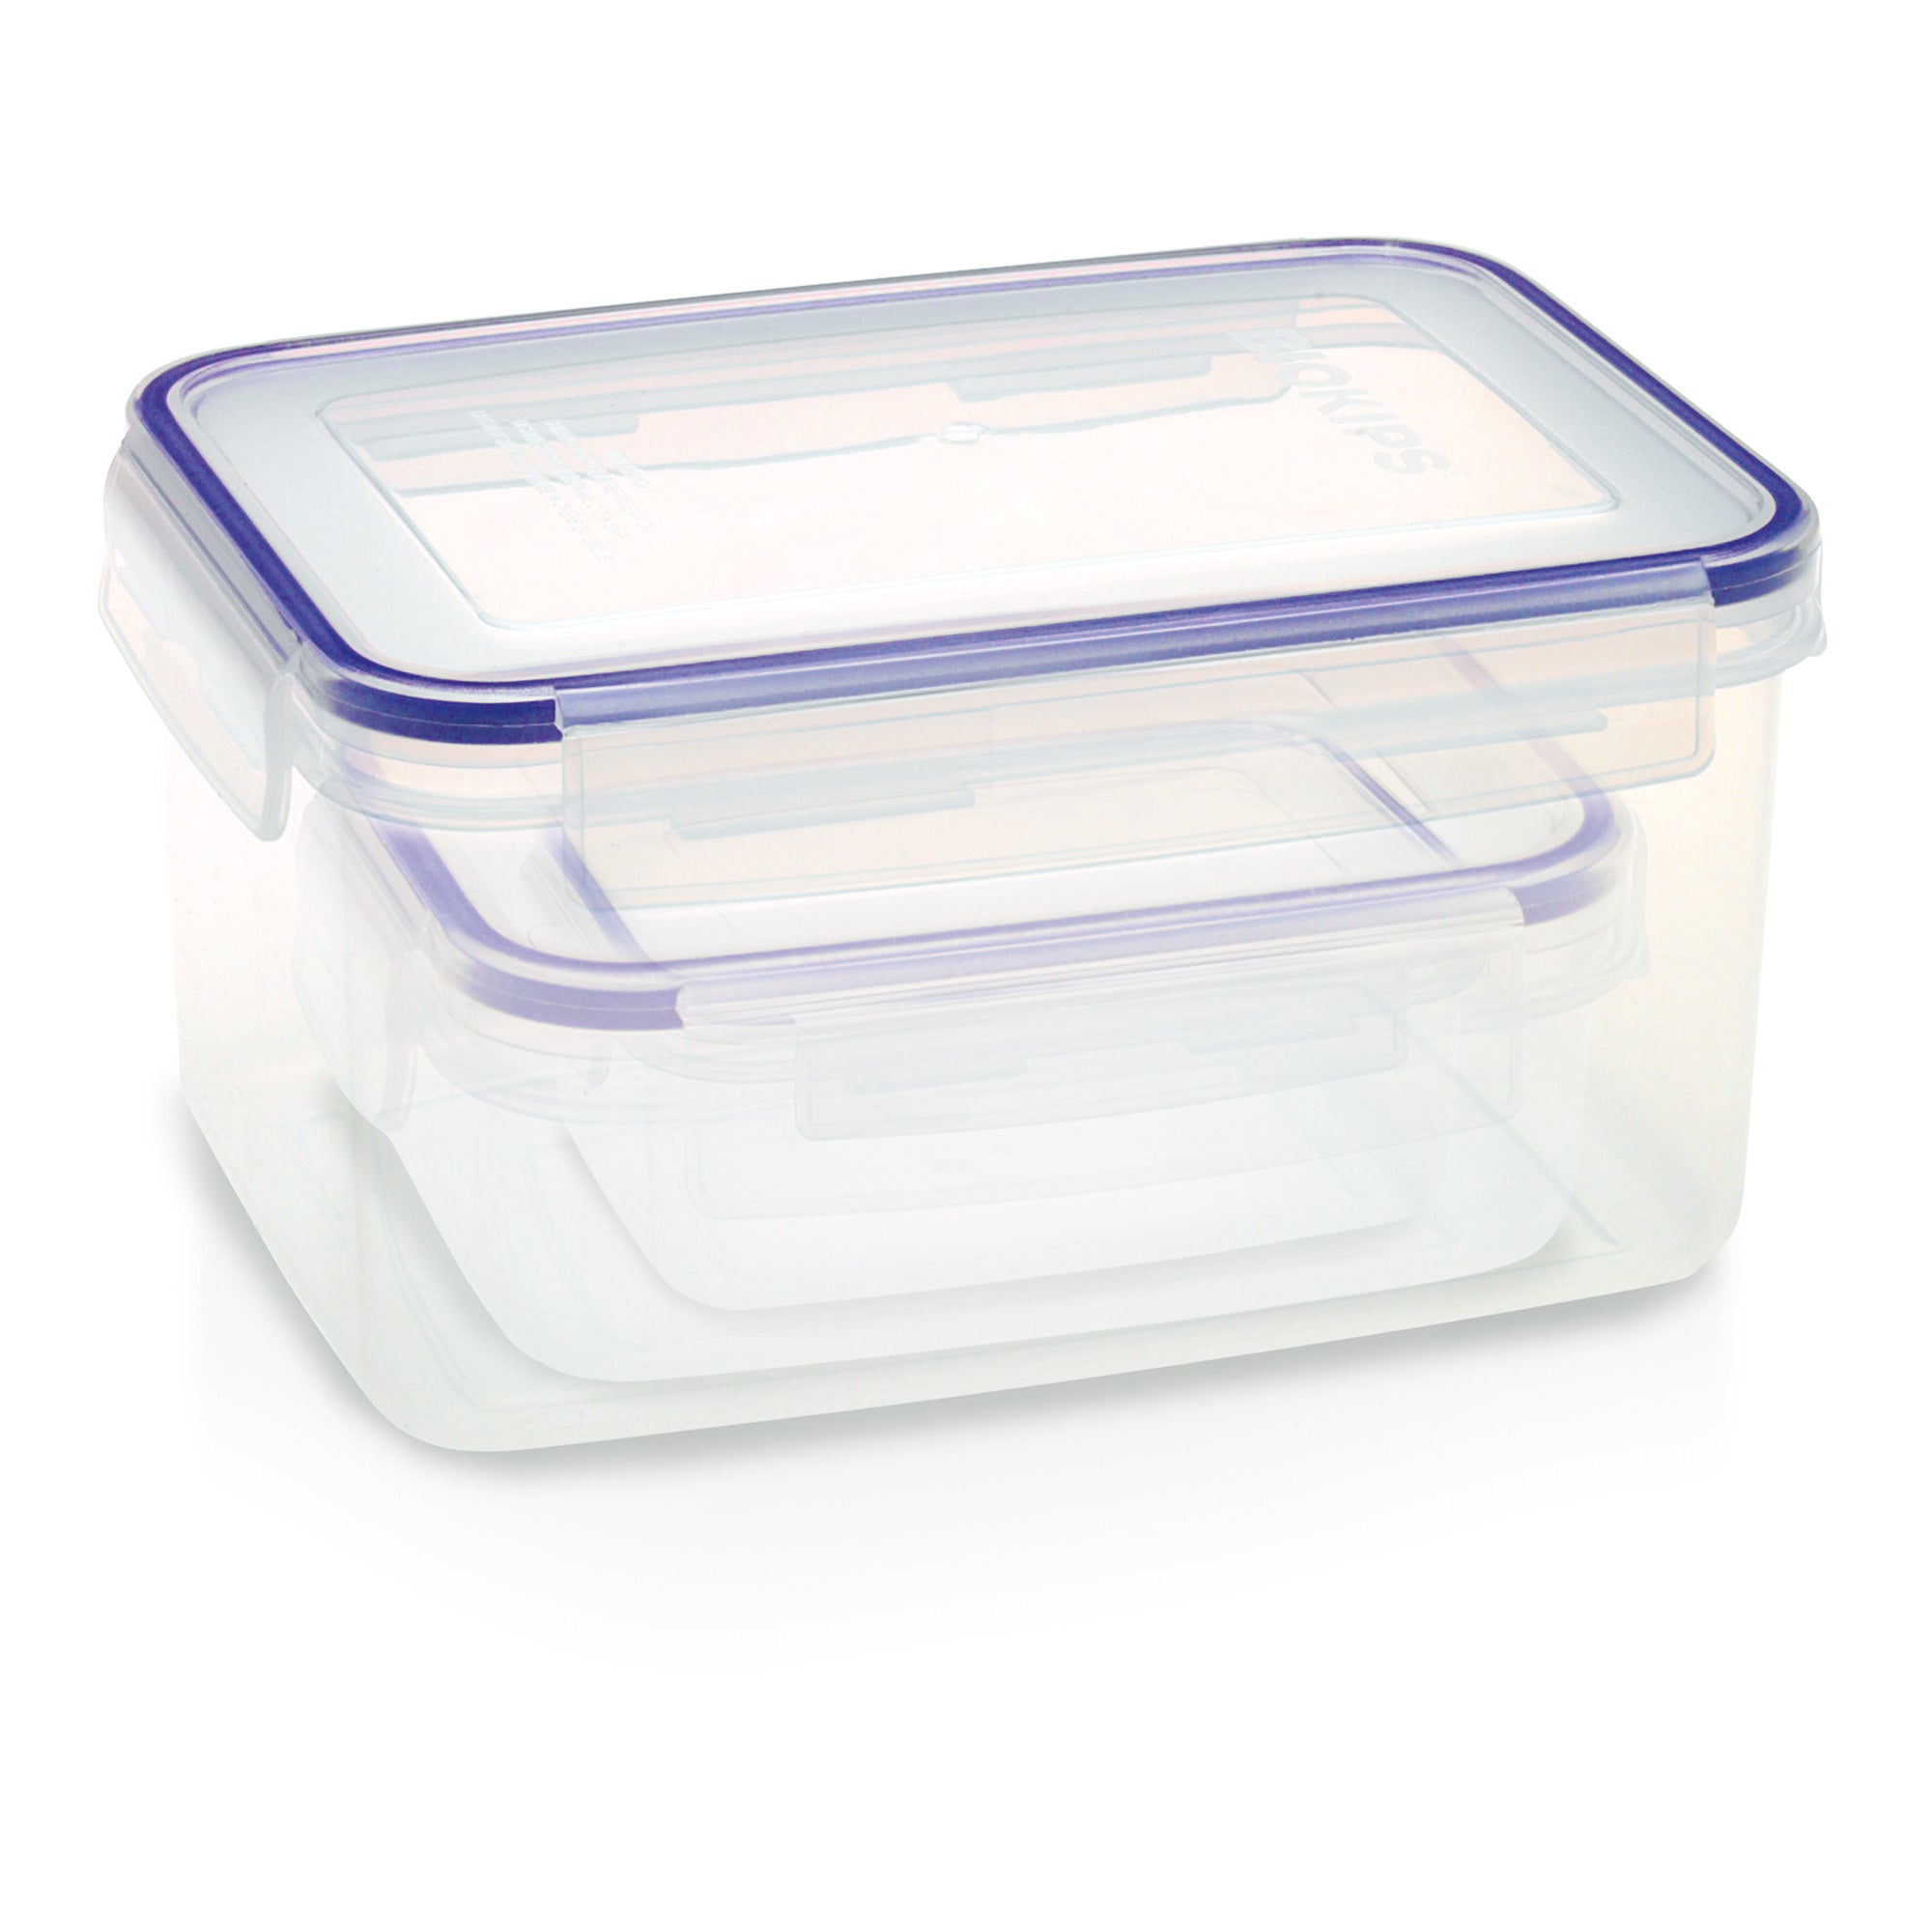 Clip & Close Food Storage 3 Piece Set